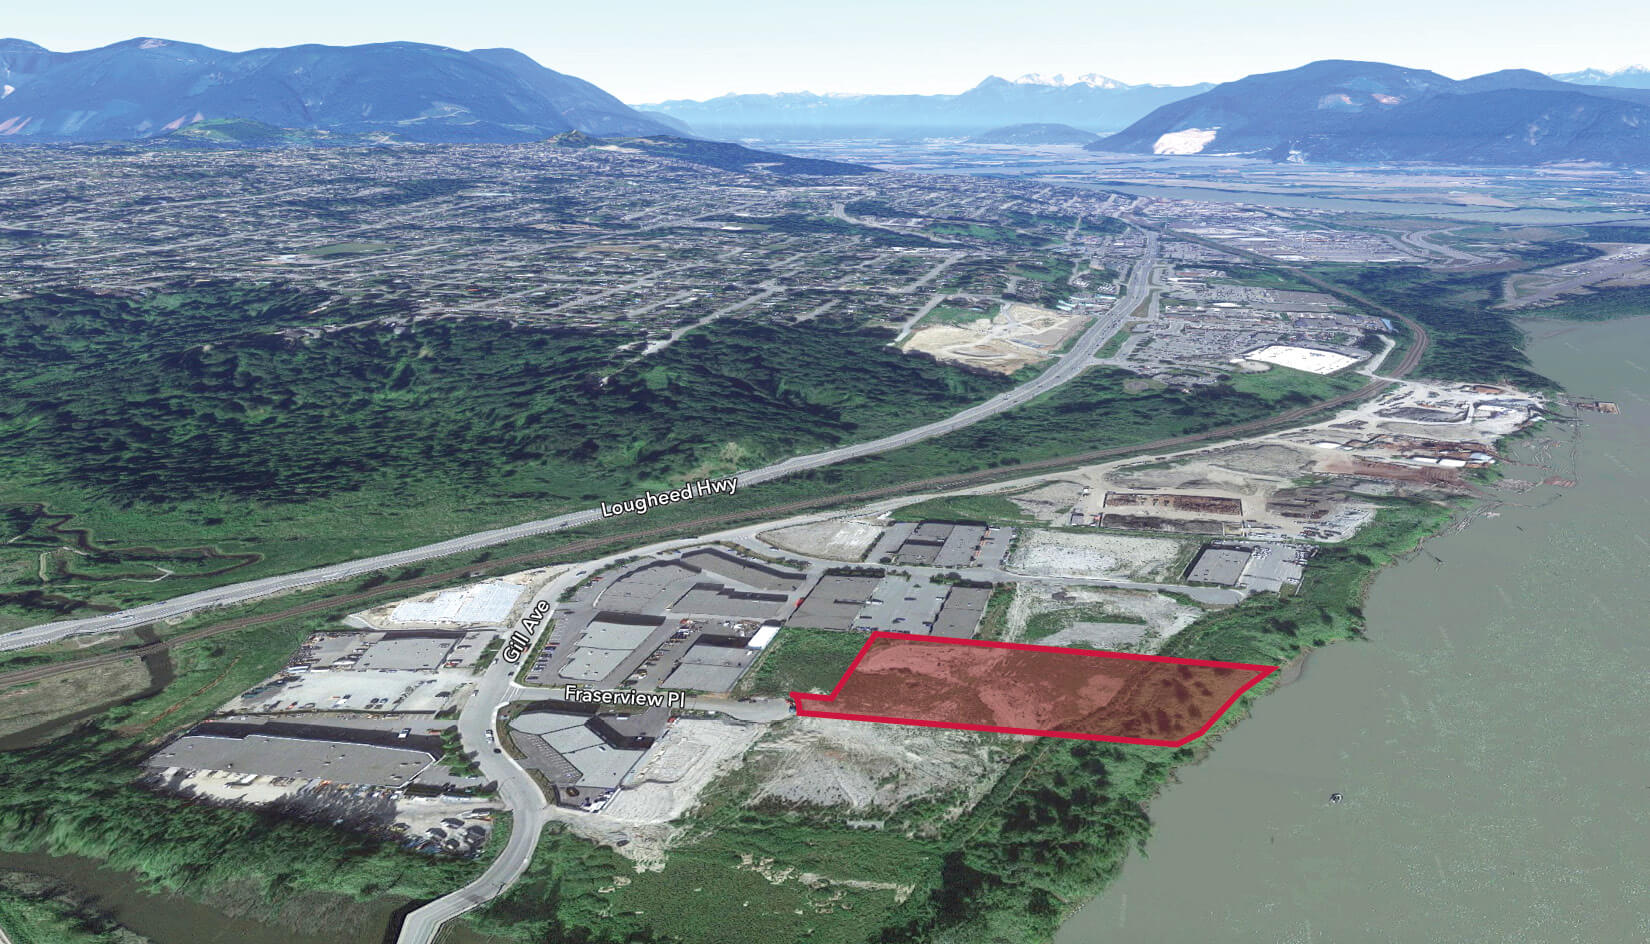 Lee & Associates Vancouver Completes Sale of 3.73 Acre Industrial Site in Mission